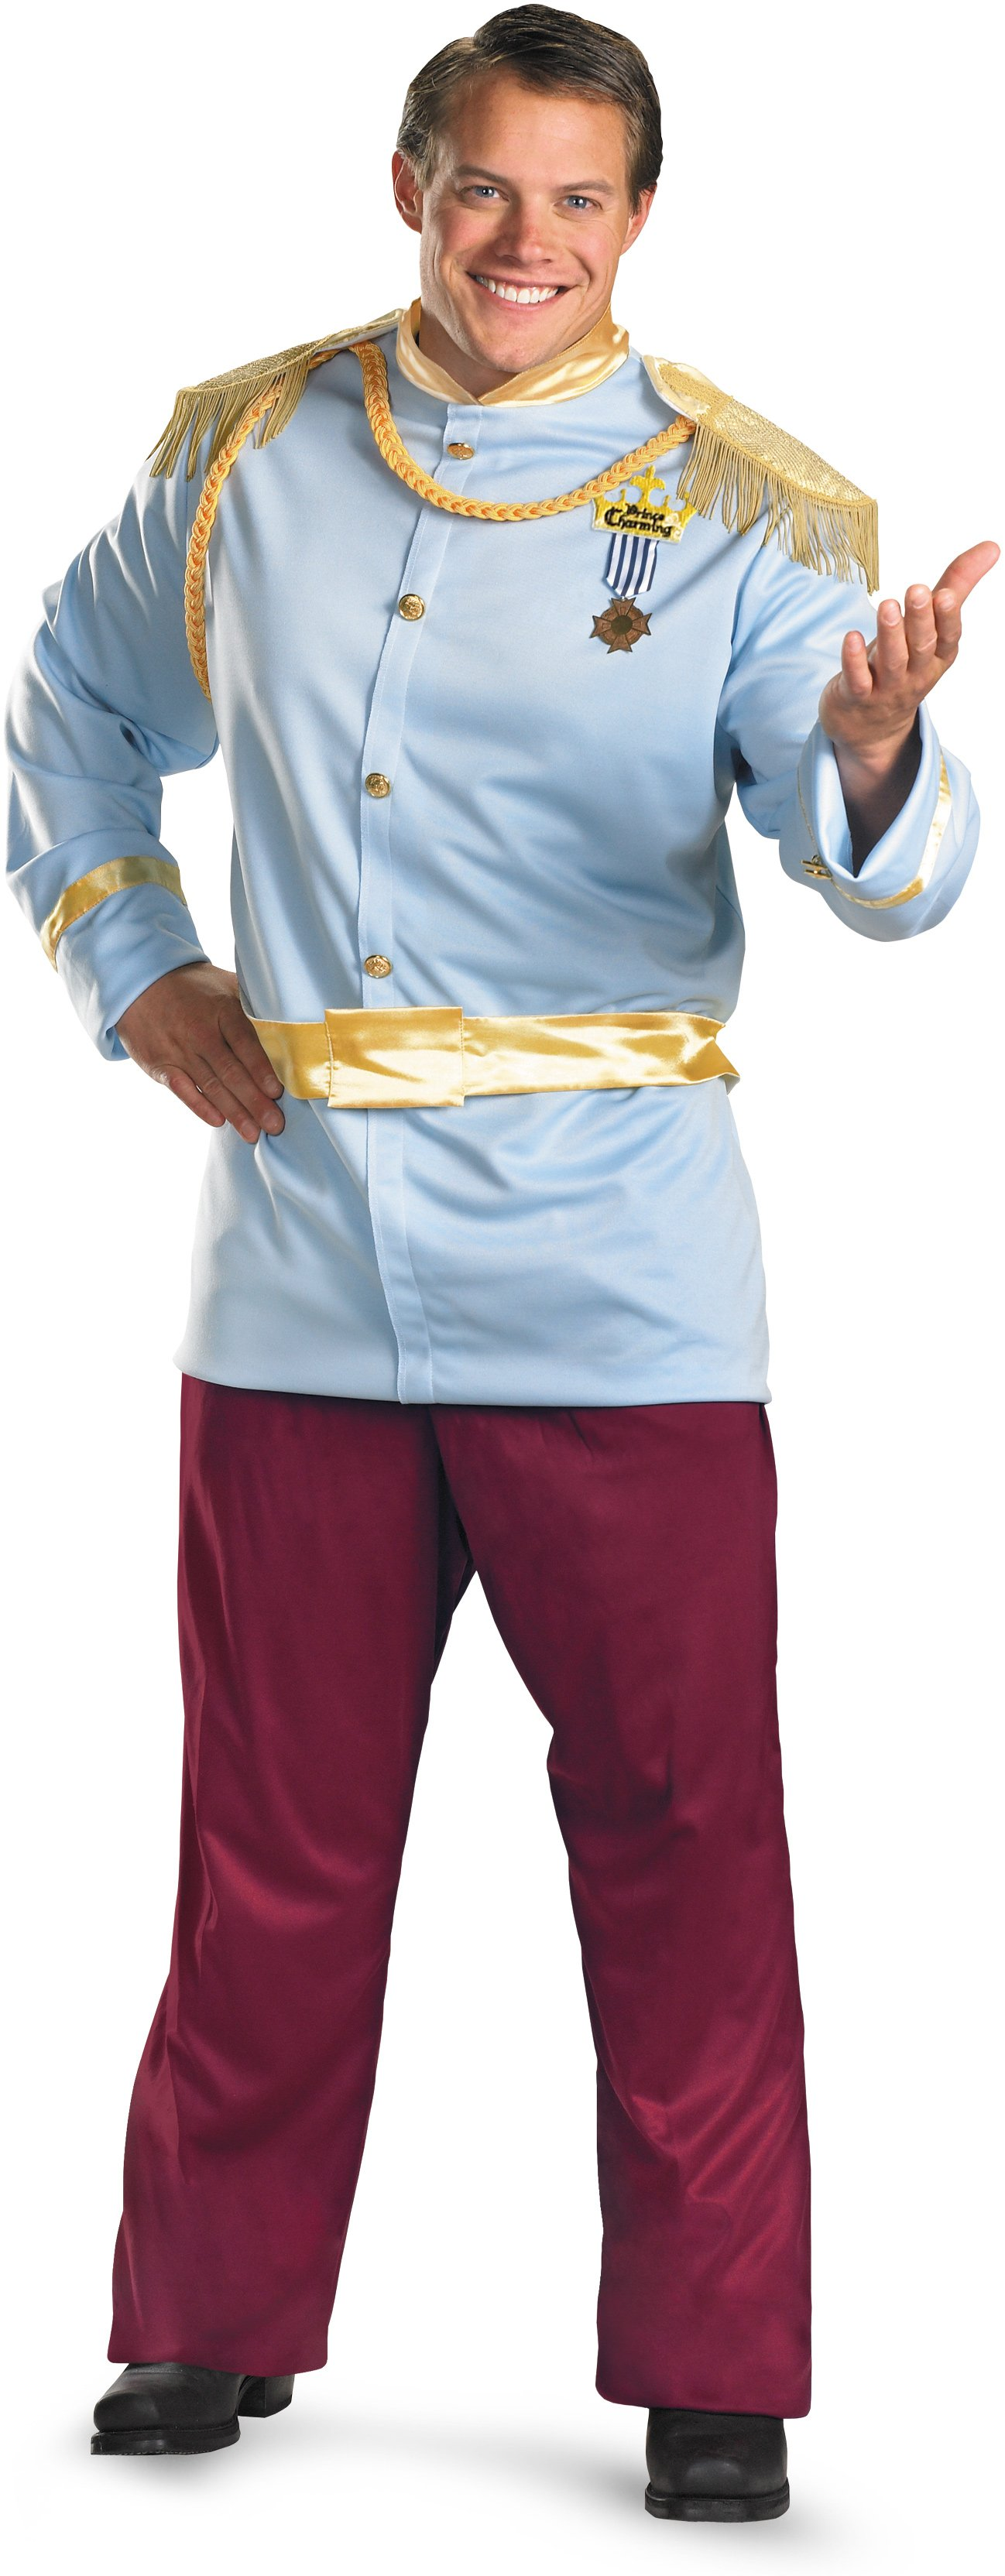 Prince Charming Deluxe Plus Adult Costume